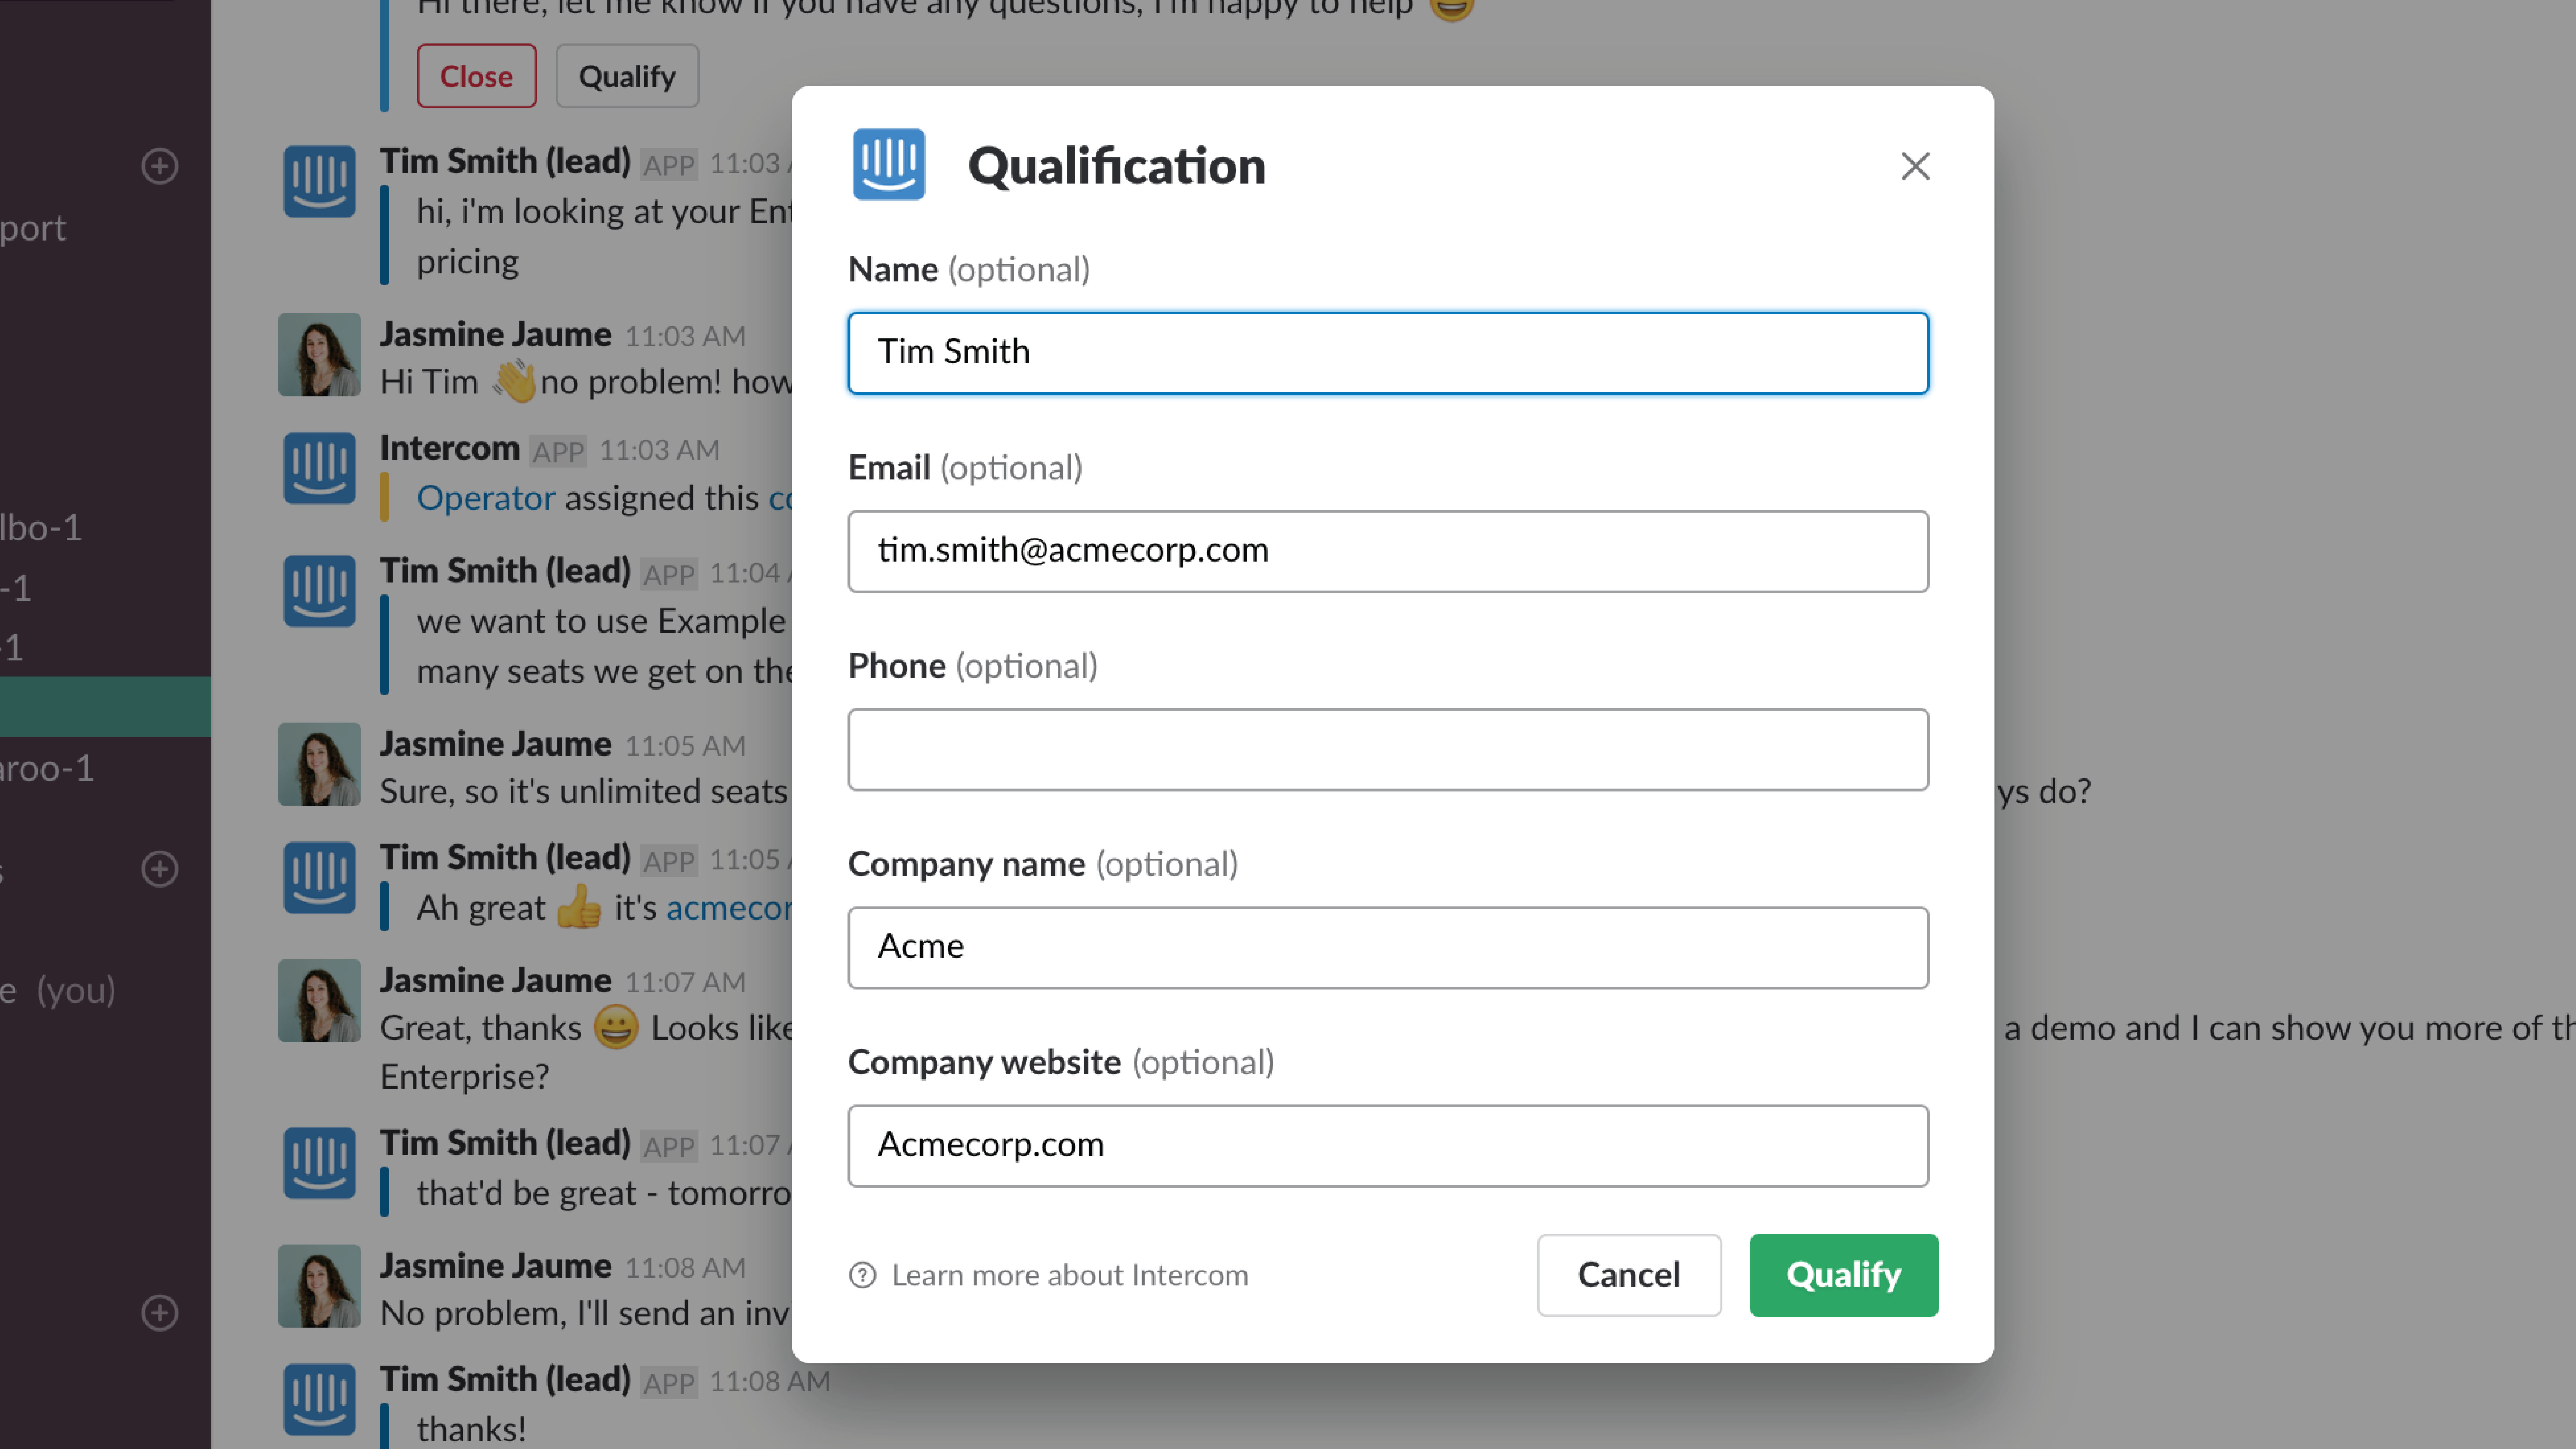 QUALIFY FROM SLACK